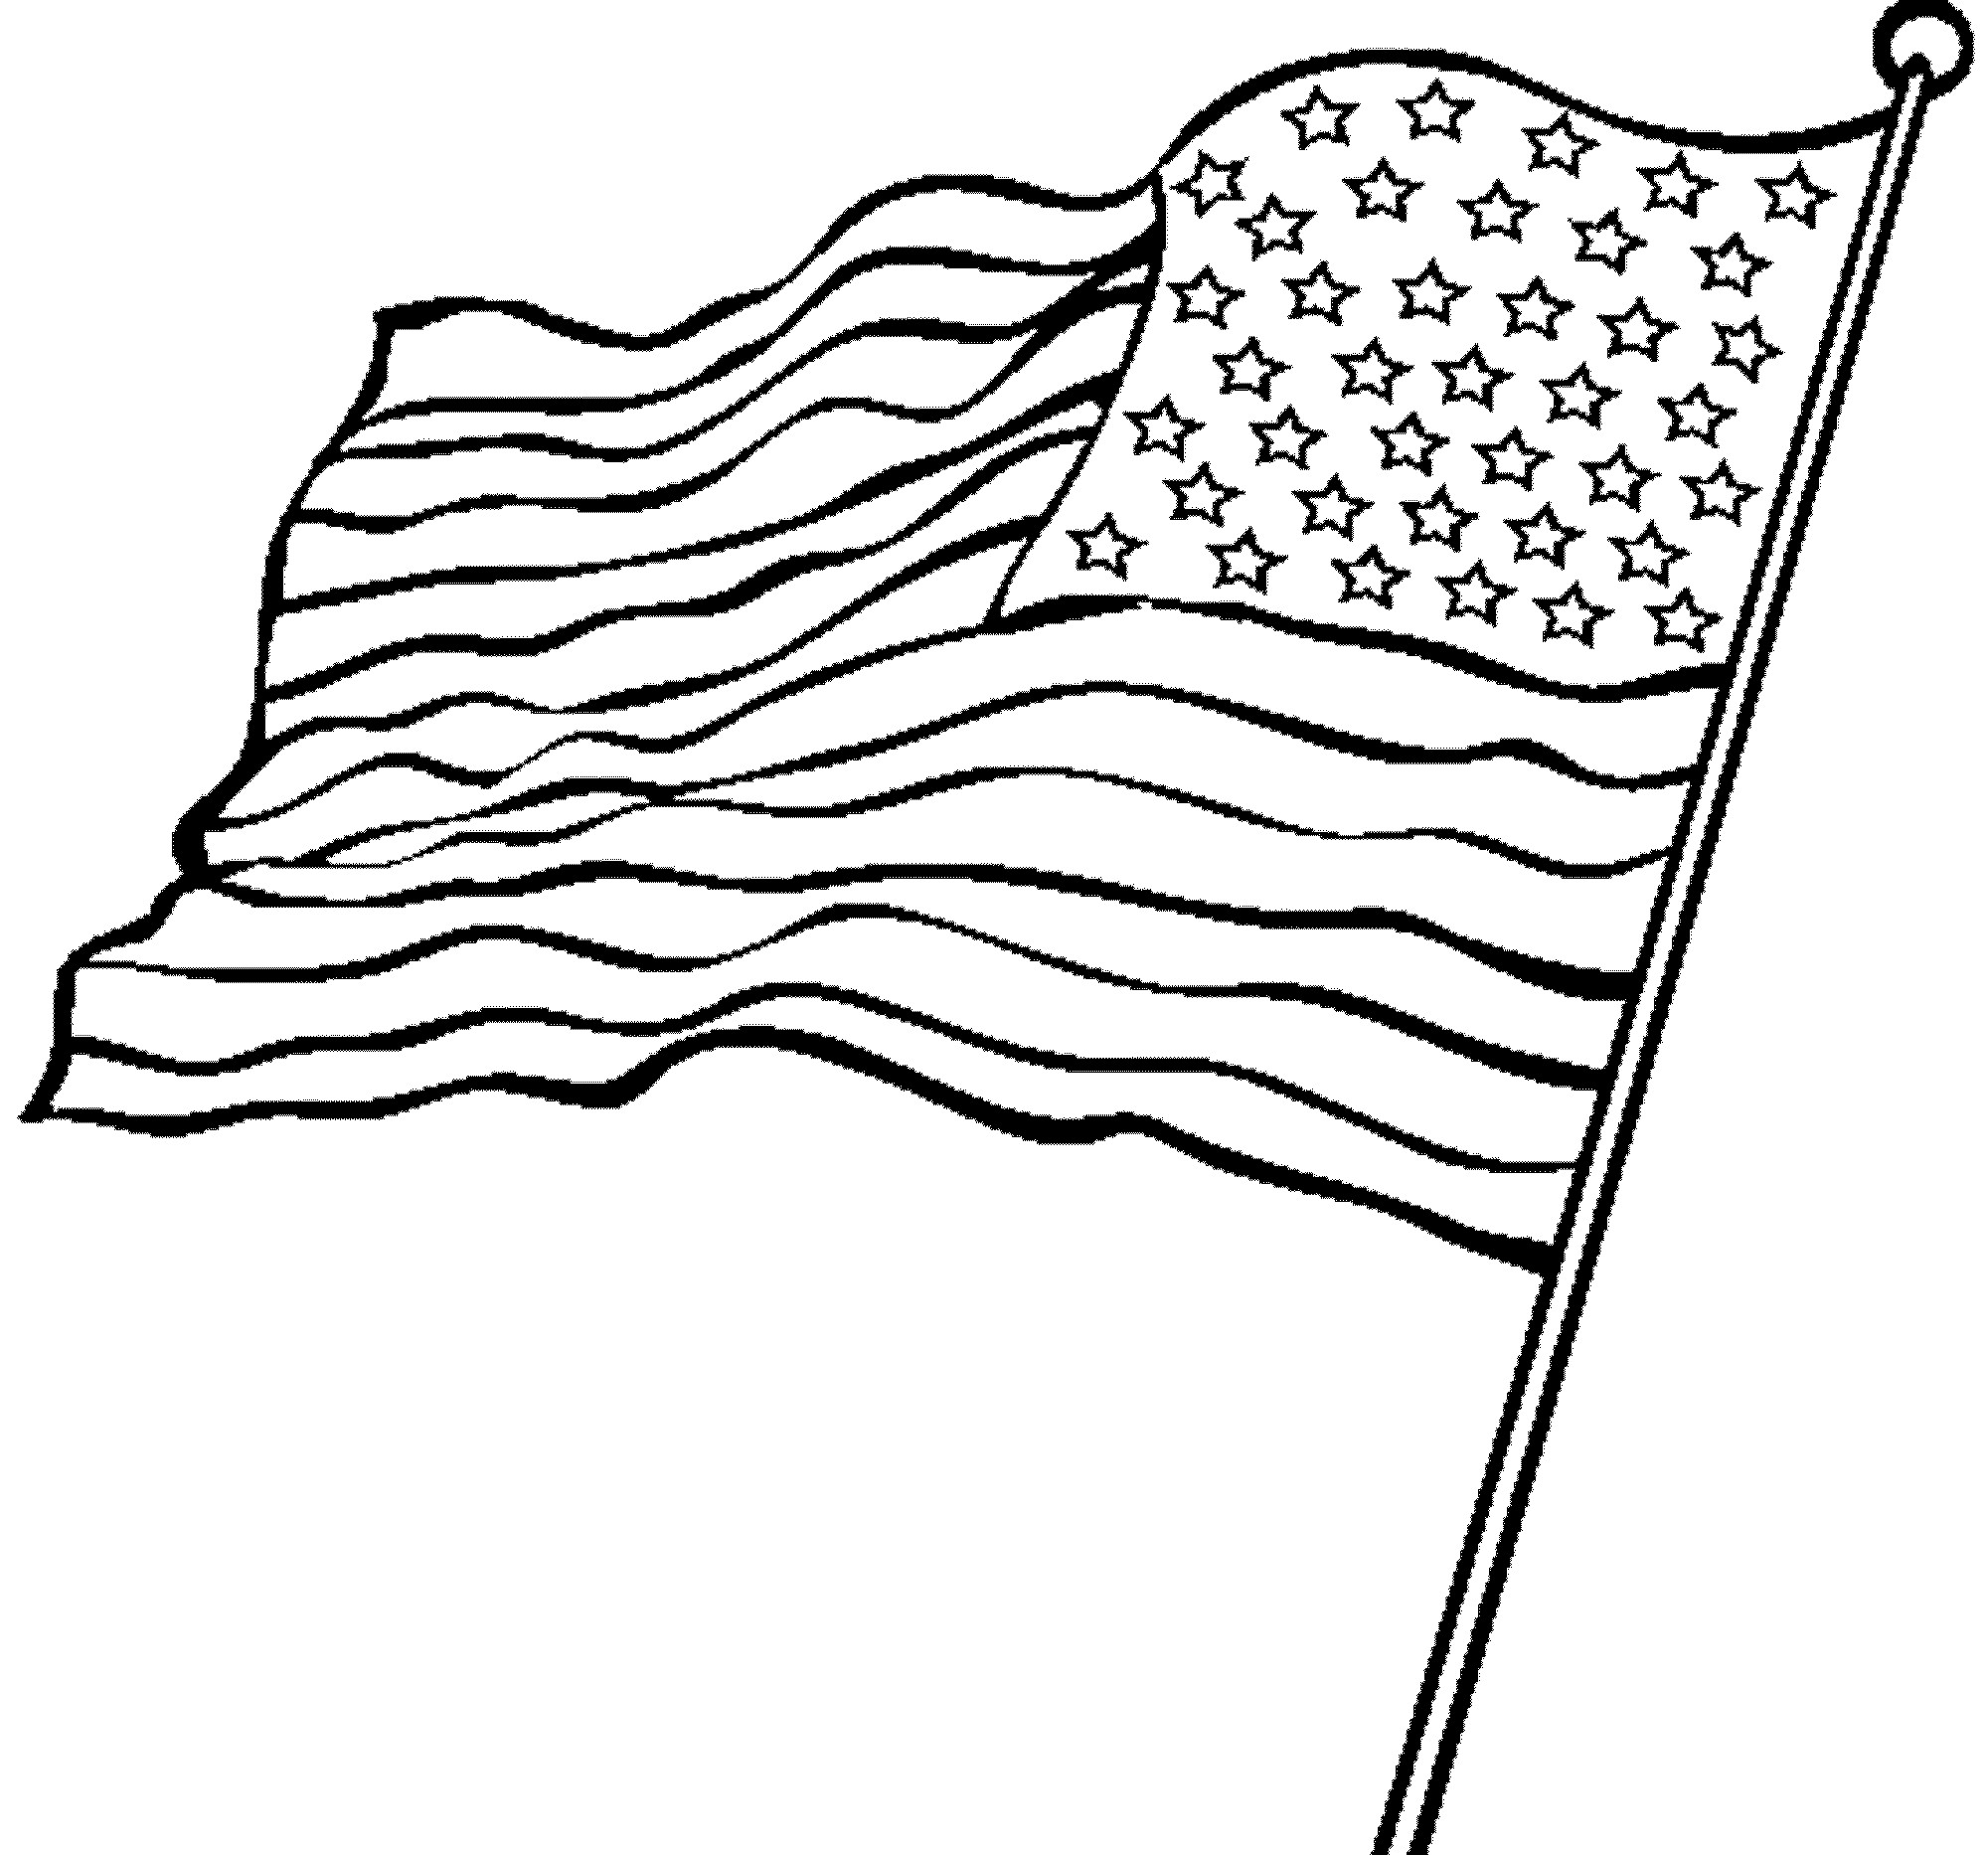 2000x1866 American Revolution Flag Coloring Page Free Draw To Color